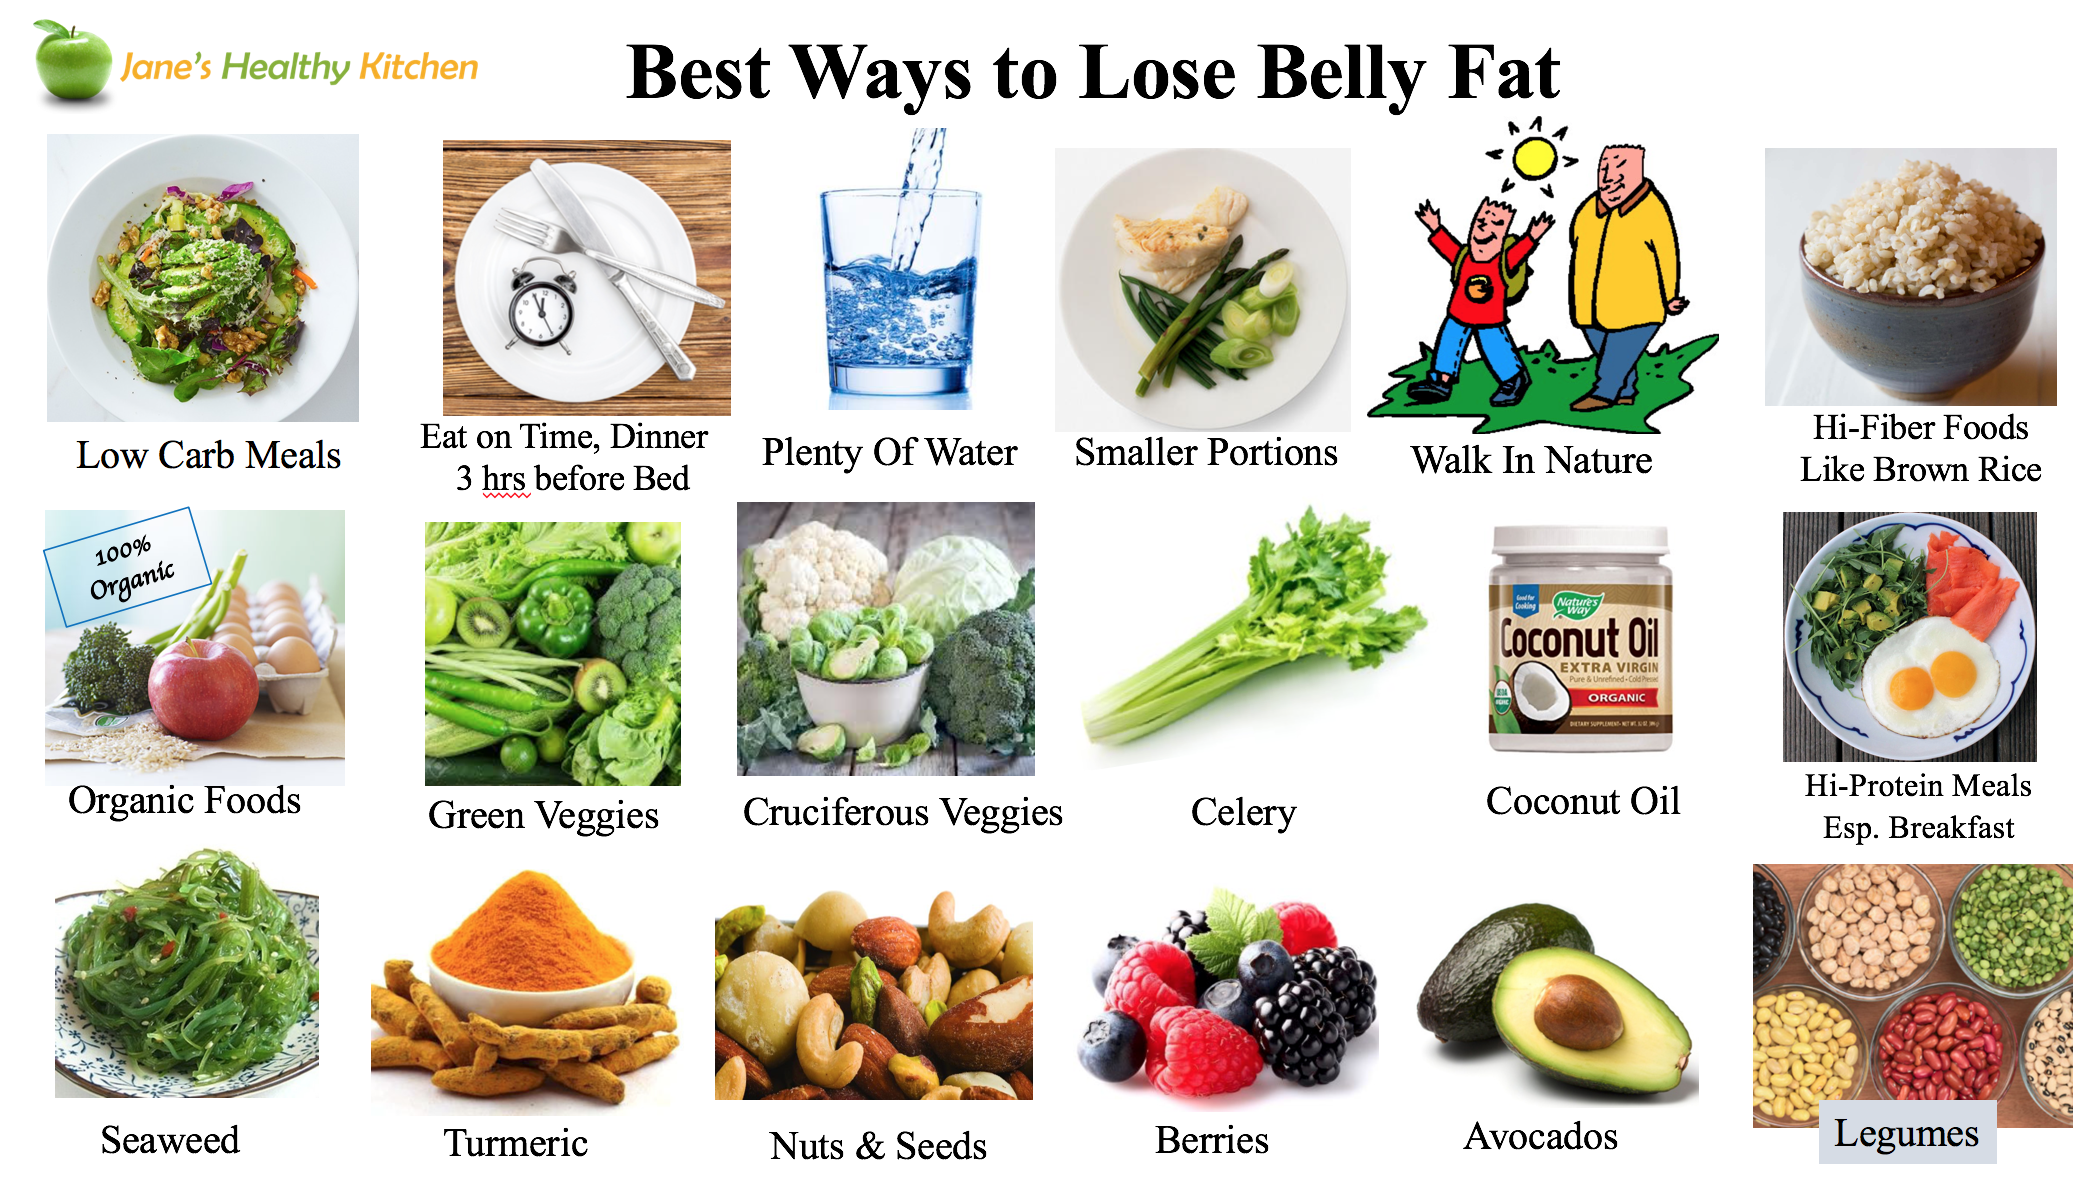 10 Steps To Lose Belly Fat Jane S Healthy Kitchen